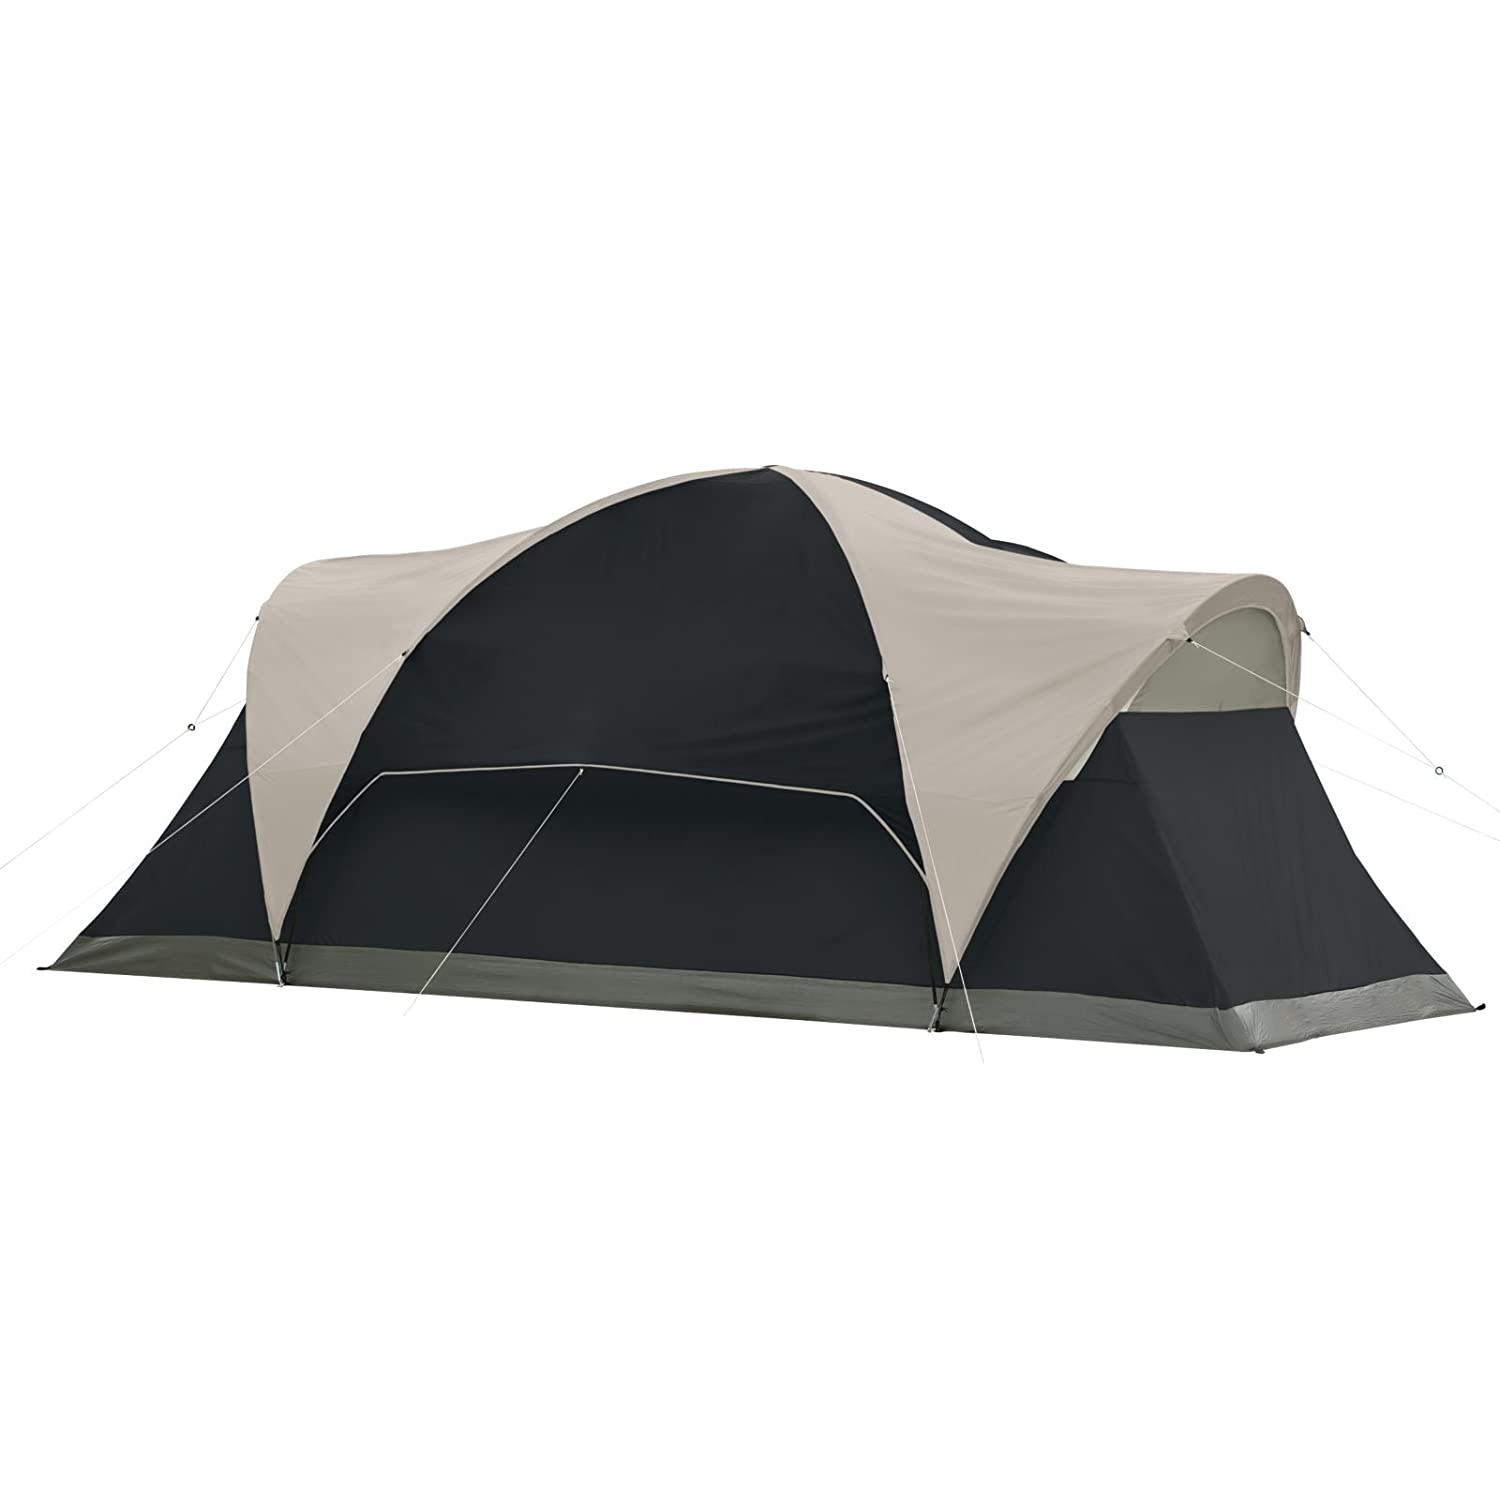 sc 1 st  Amazon.ca & Coleman Montana 8-Person Tent Black: Amazon.ca: Sports u0026 Outdoors